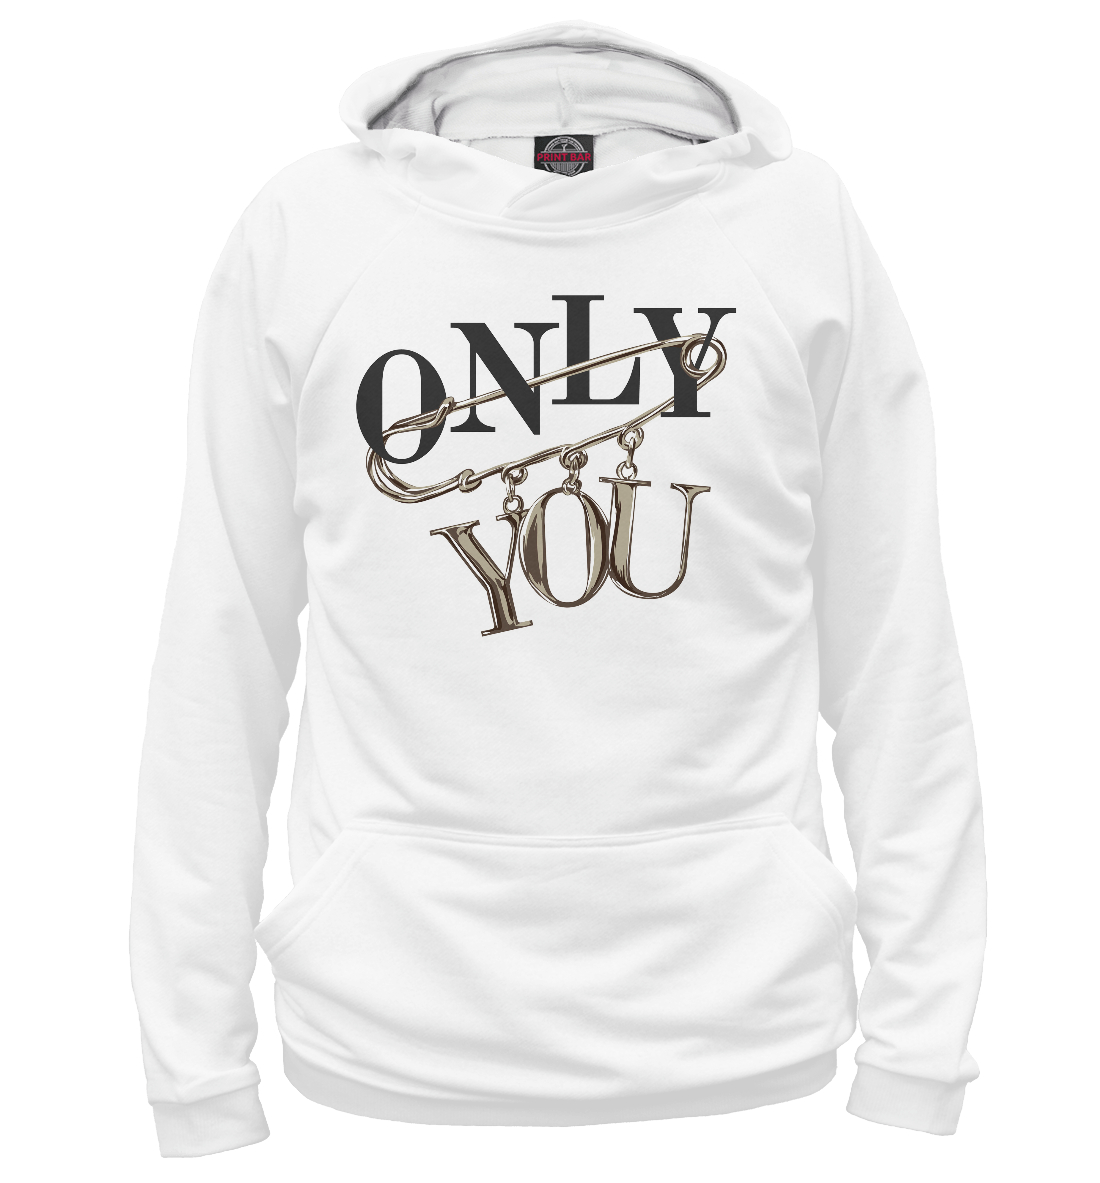 Only you only you